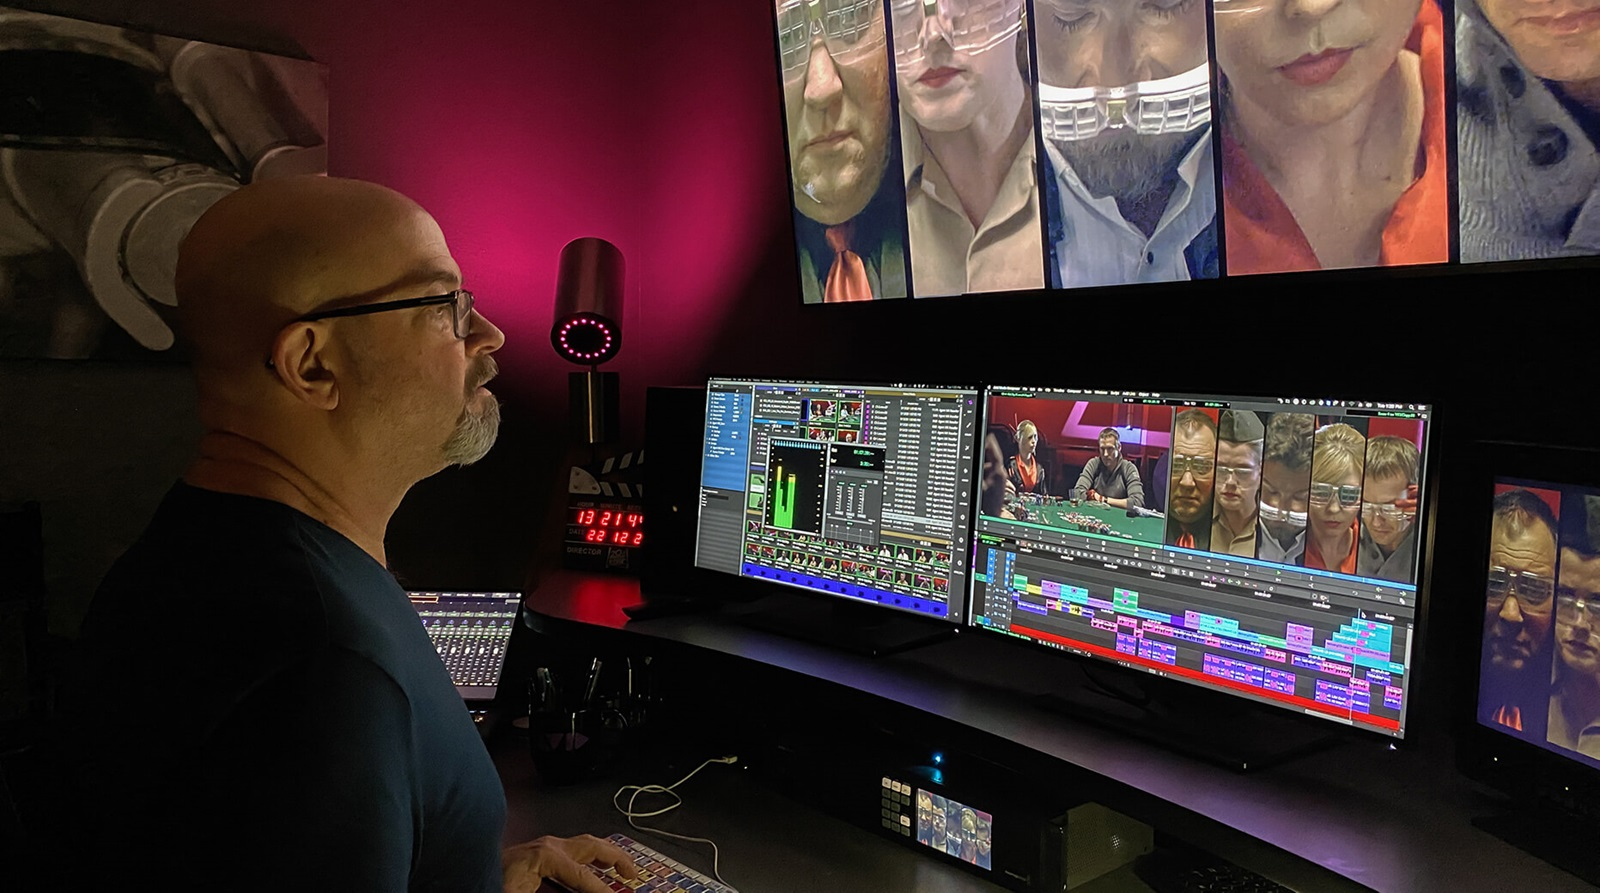 editing video on Media Composer 2021.3